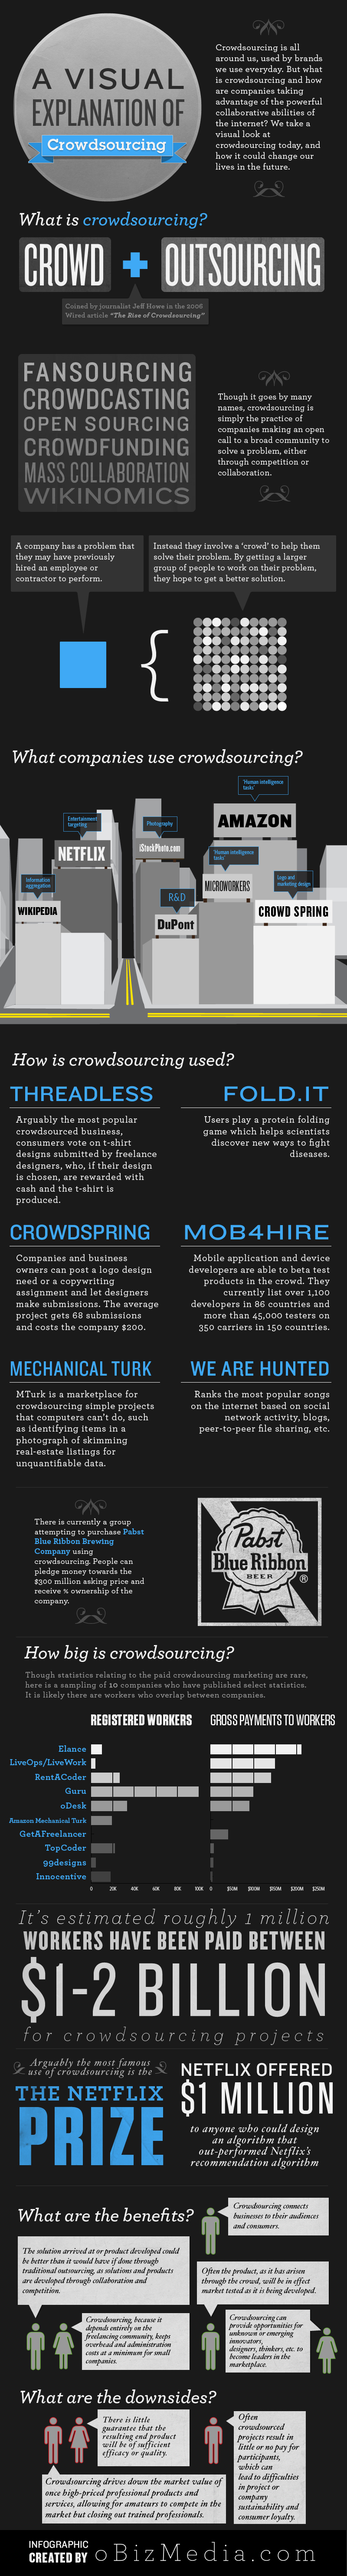 Crowdsourcing-Infographic